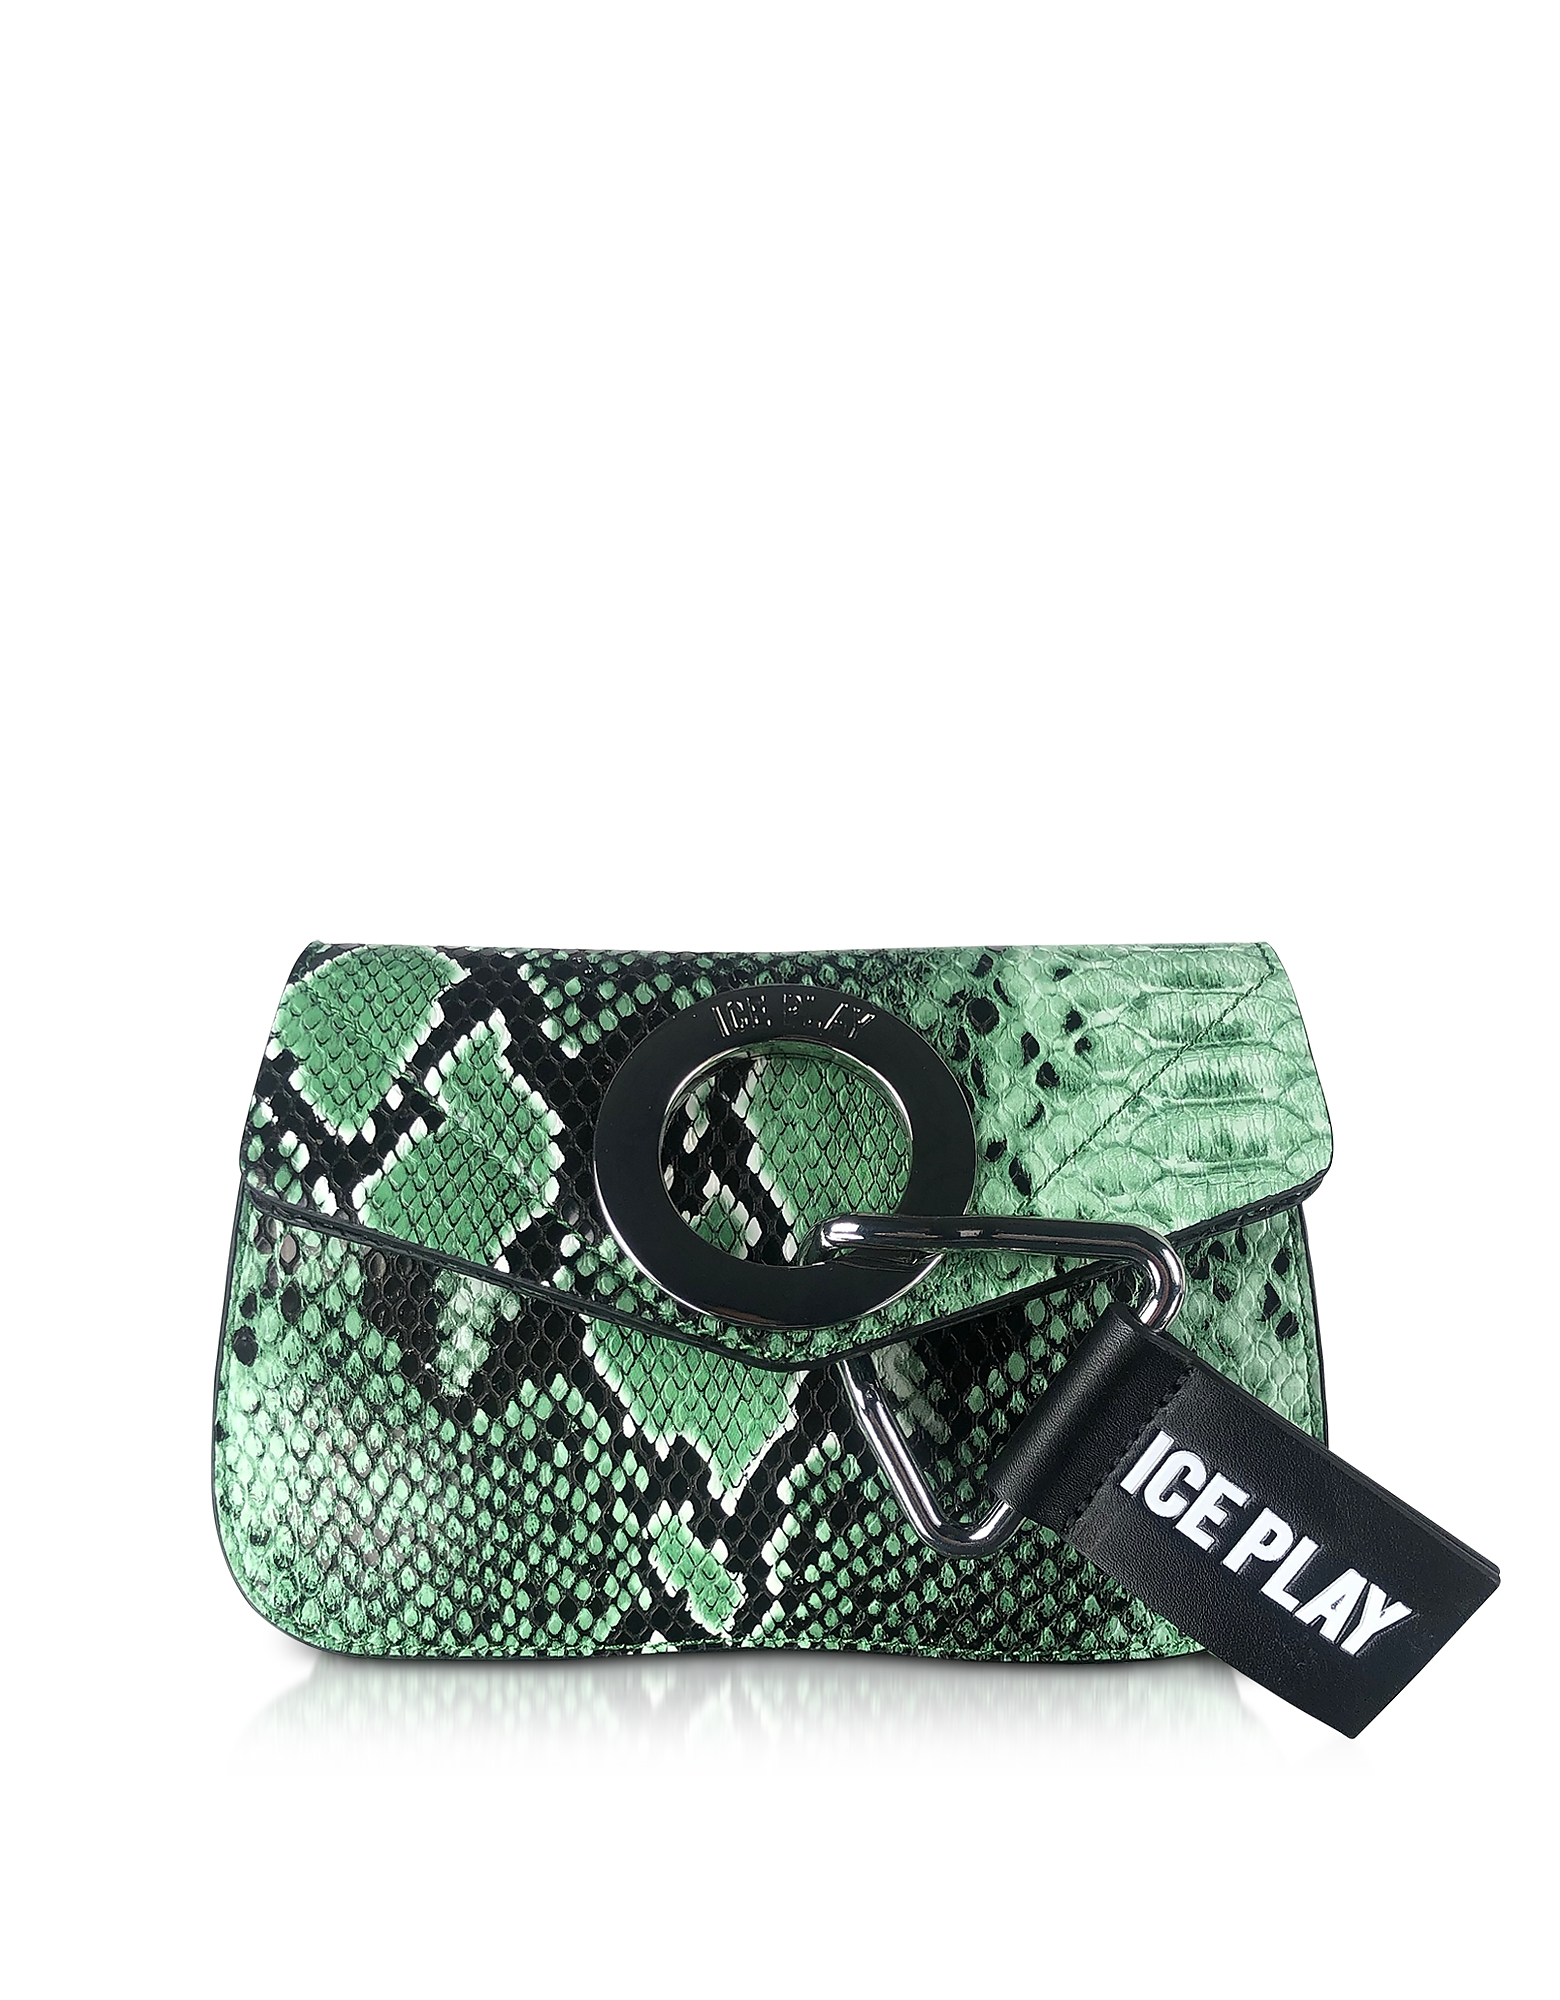 Ice Play Designer Handbags, Emerald Green Python Printed Eco-Leather Clutch